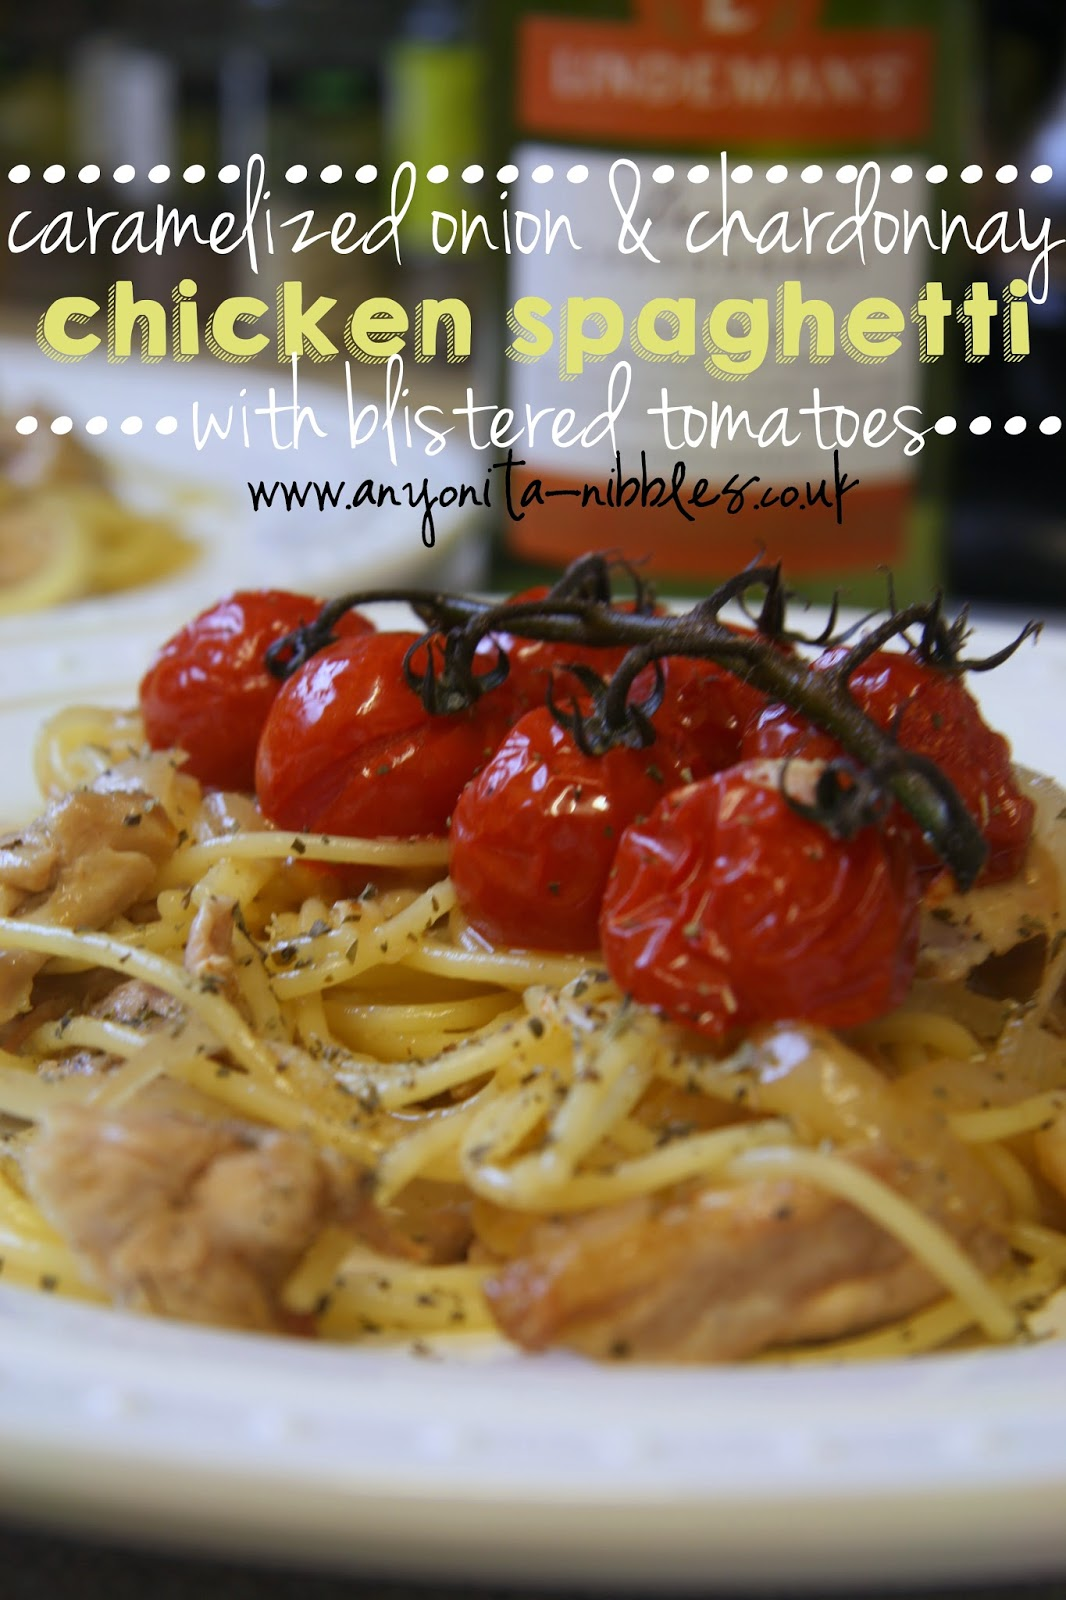 A sophisticated end of summer spaghetti dish made from Lindeman's chardonnay from www.anyonita-nibbles.co.uk